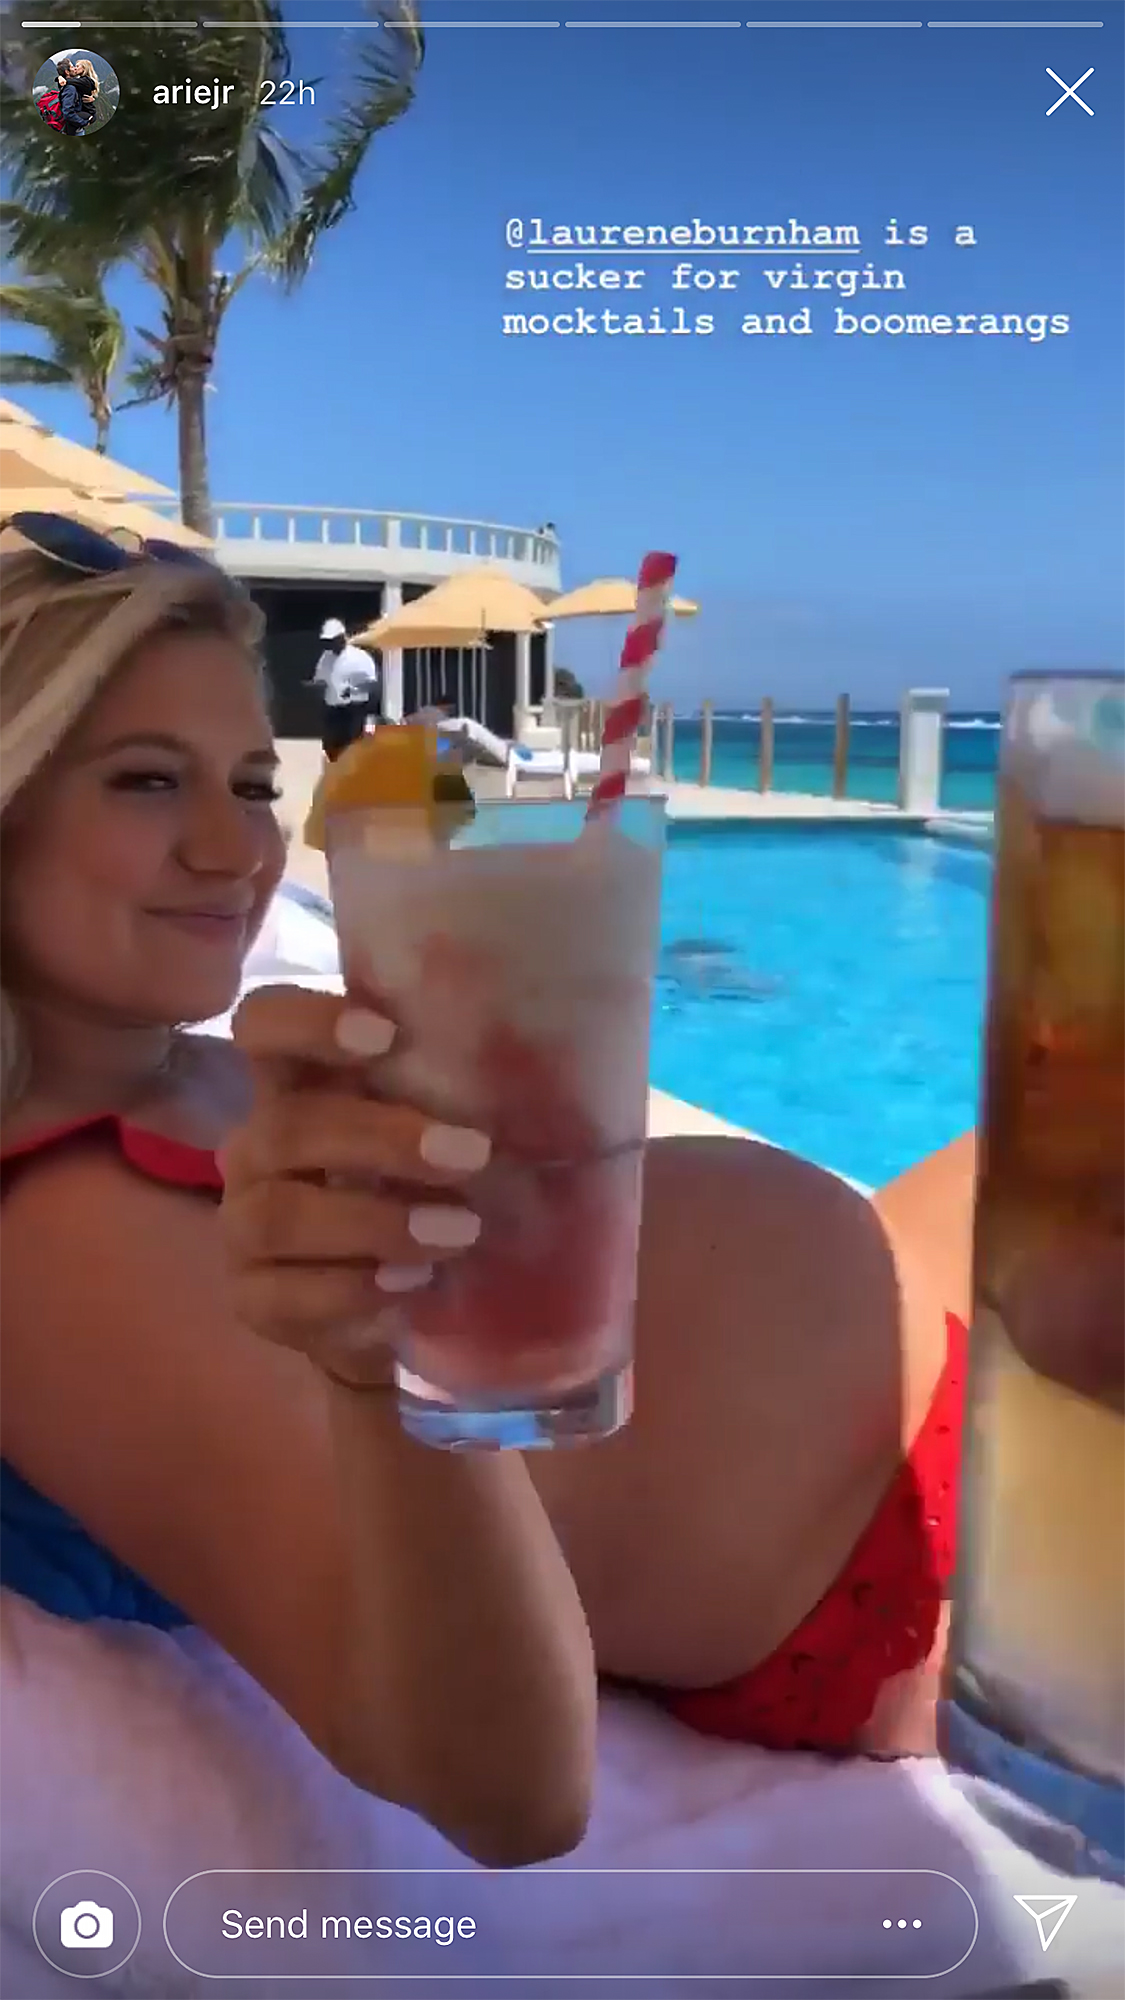 "Arie Luyendyk Jr. and Lauren Burnham Bermuda Babymoon - ""@laureneburnham is a sucker for virgin mocktails and boomerangs,"" the former Bachelor captioned a video of his wife poolside on Monday, April 22. She held a red drink while sporting a red bikini."